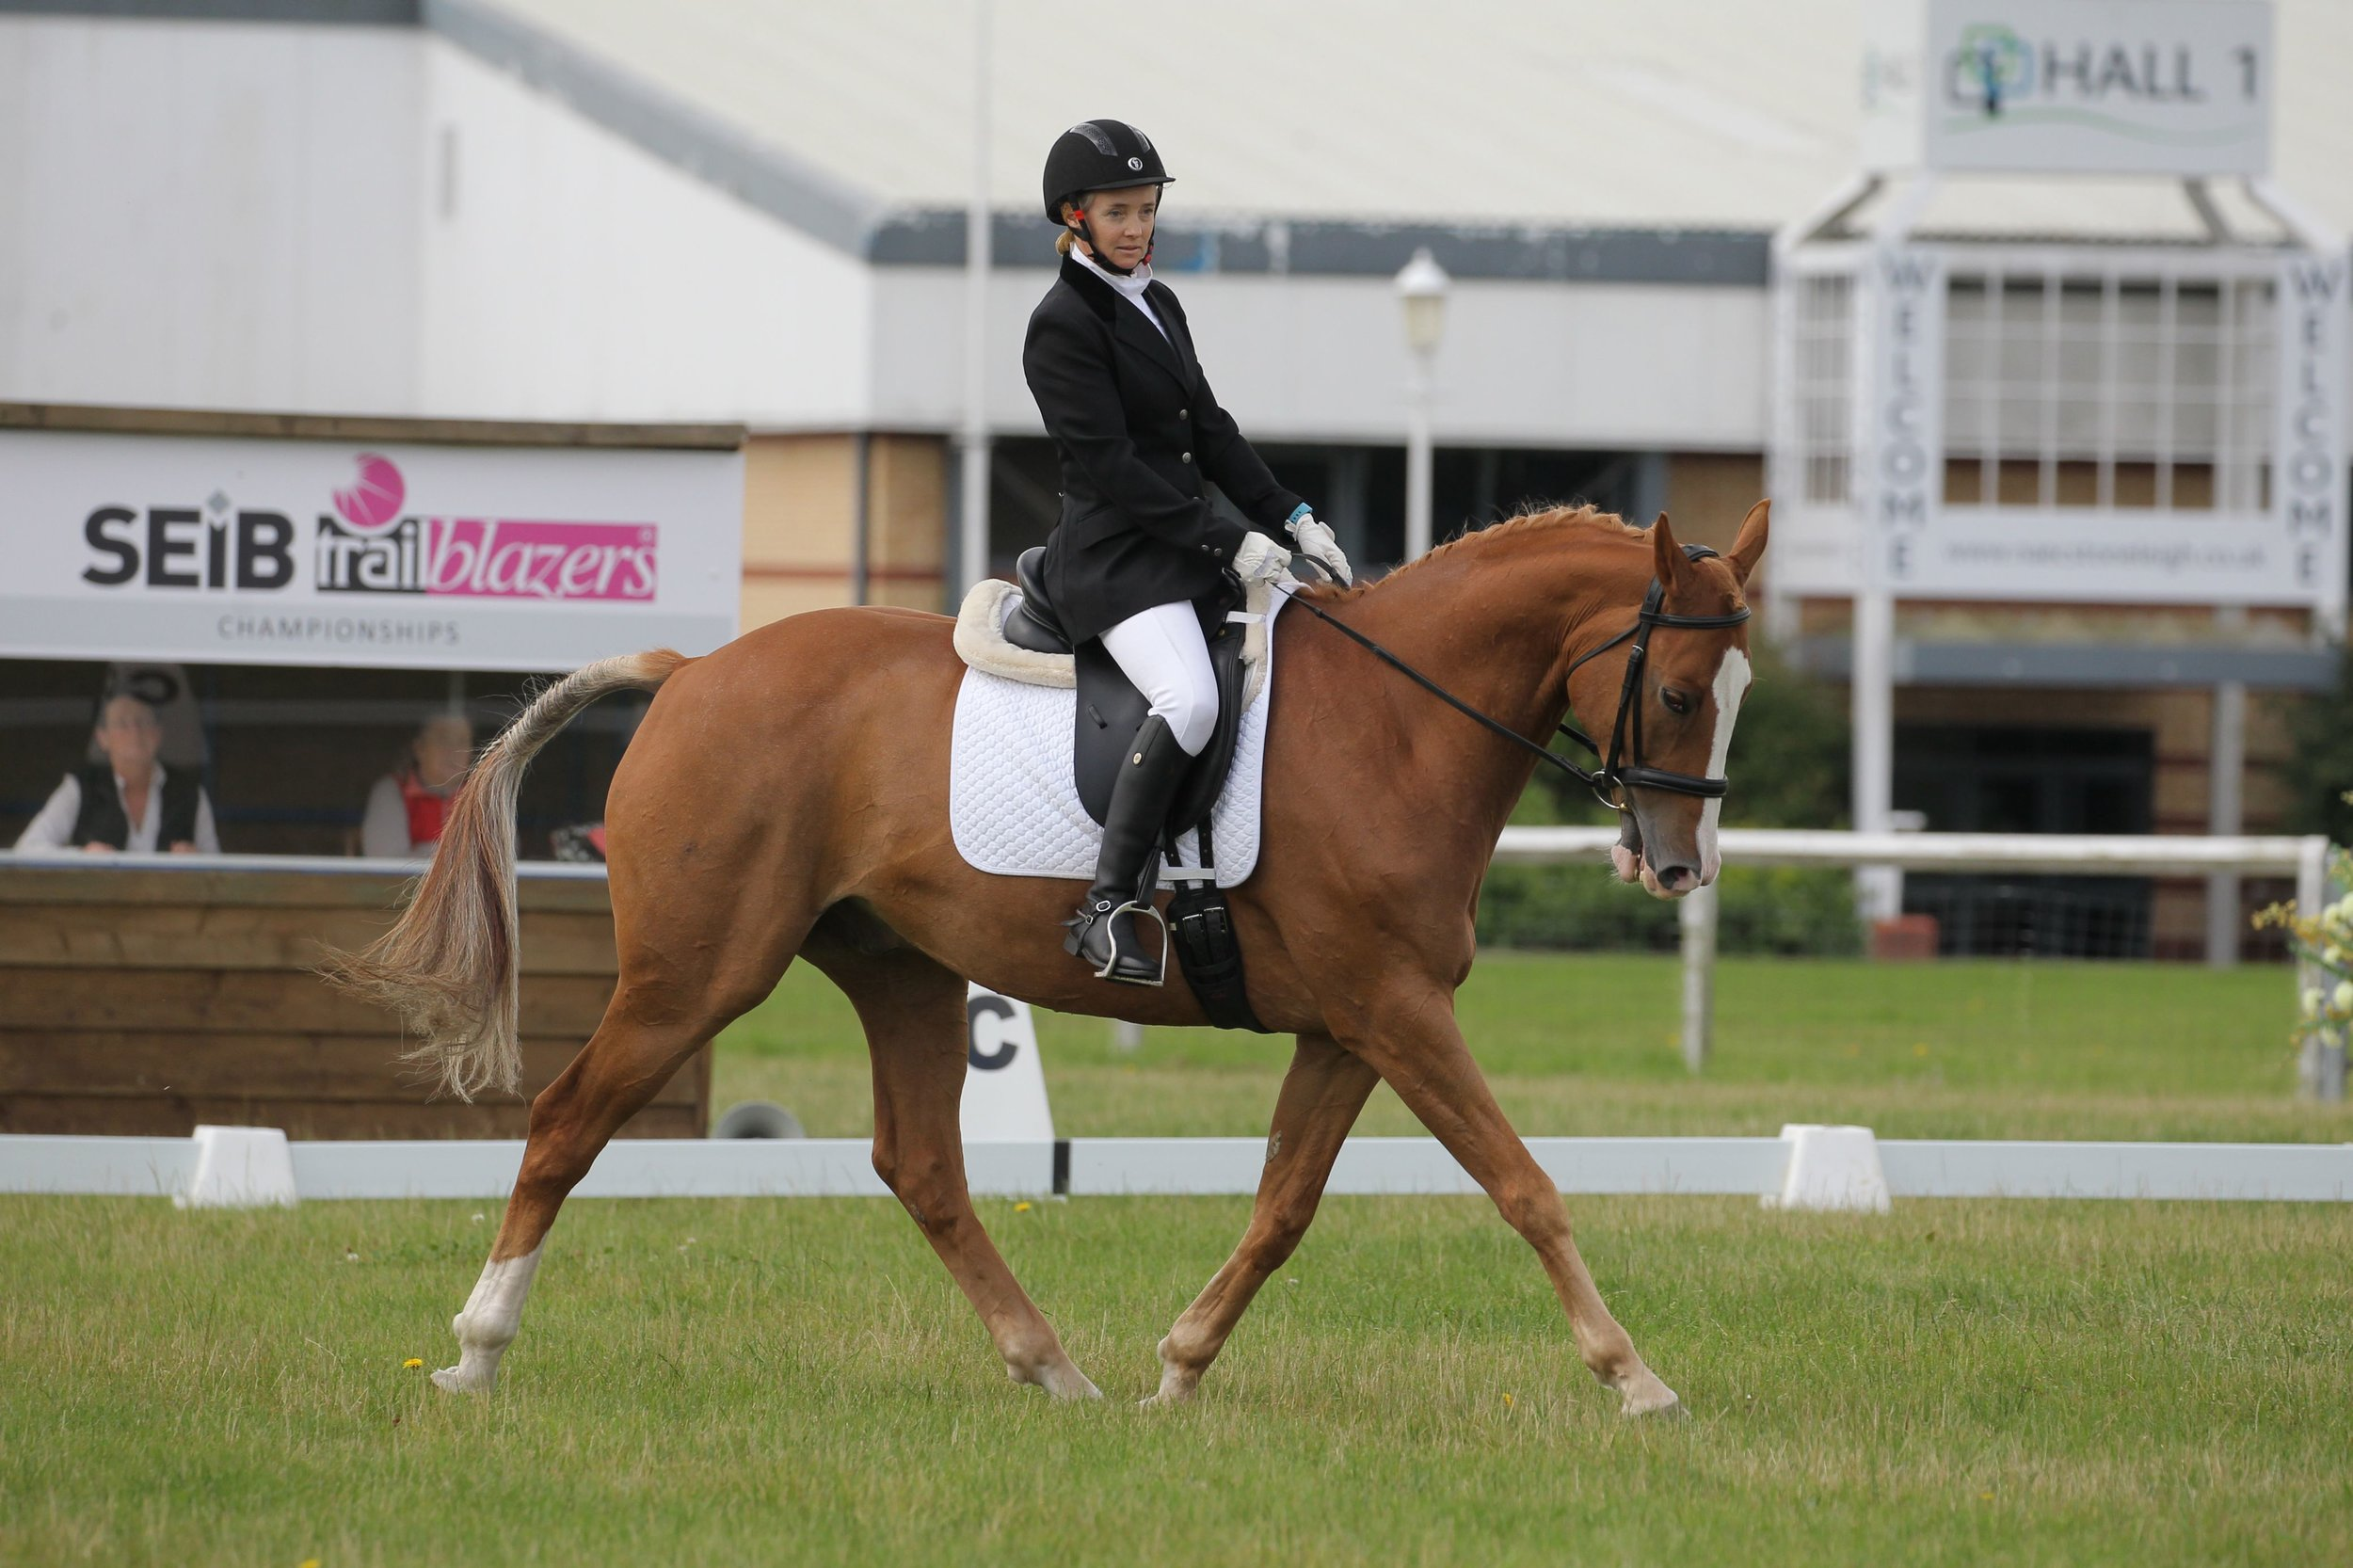 Competing at the Trailblazers National Championships is a thrill for competitors (Credit: Hoof Print Photos)